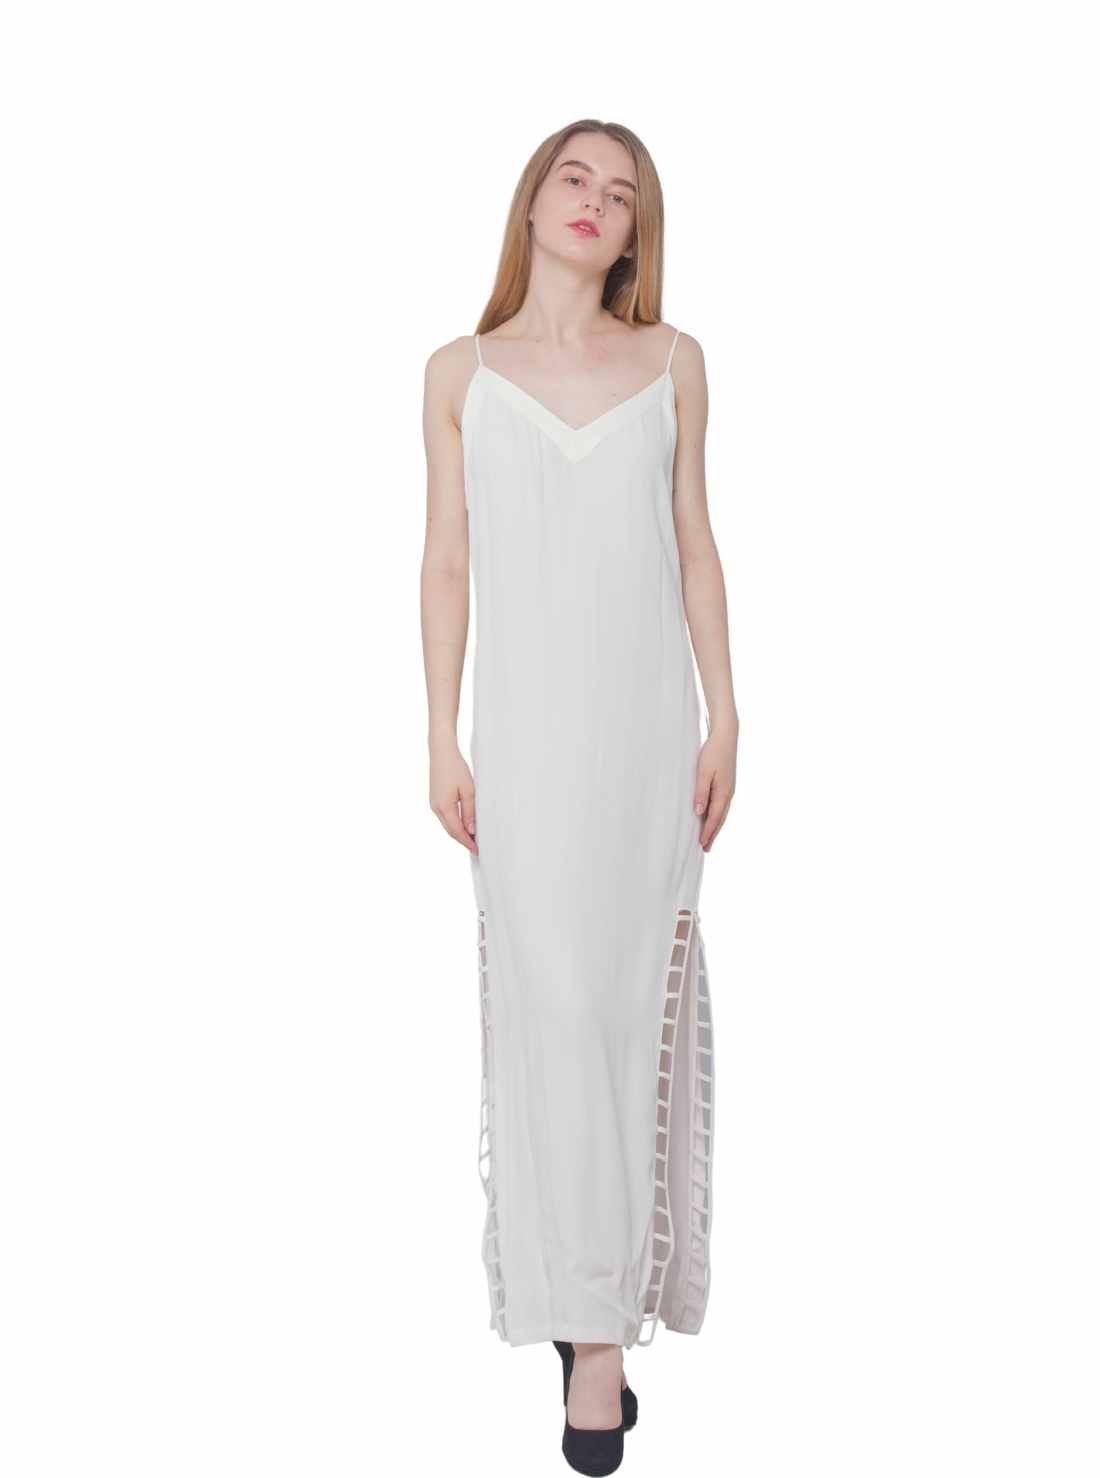 Slip A-Line White Maxi Dress with Slits at Both Sides